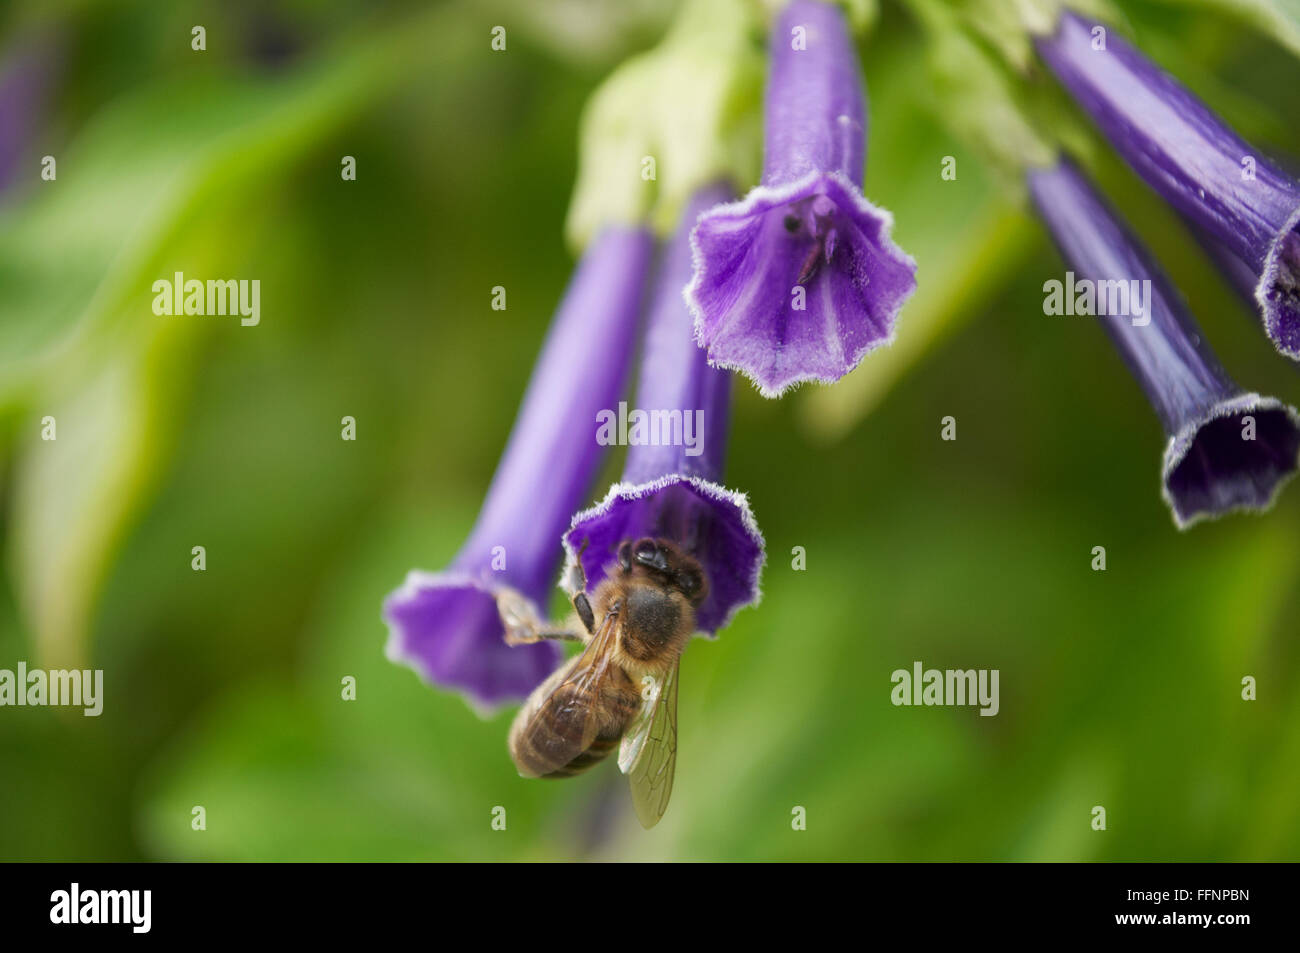 on the background of green leaves blue flower and bee - Stock Image